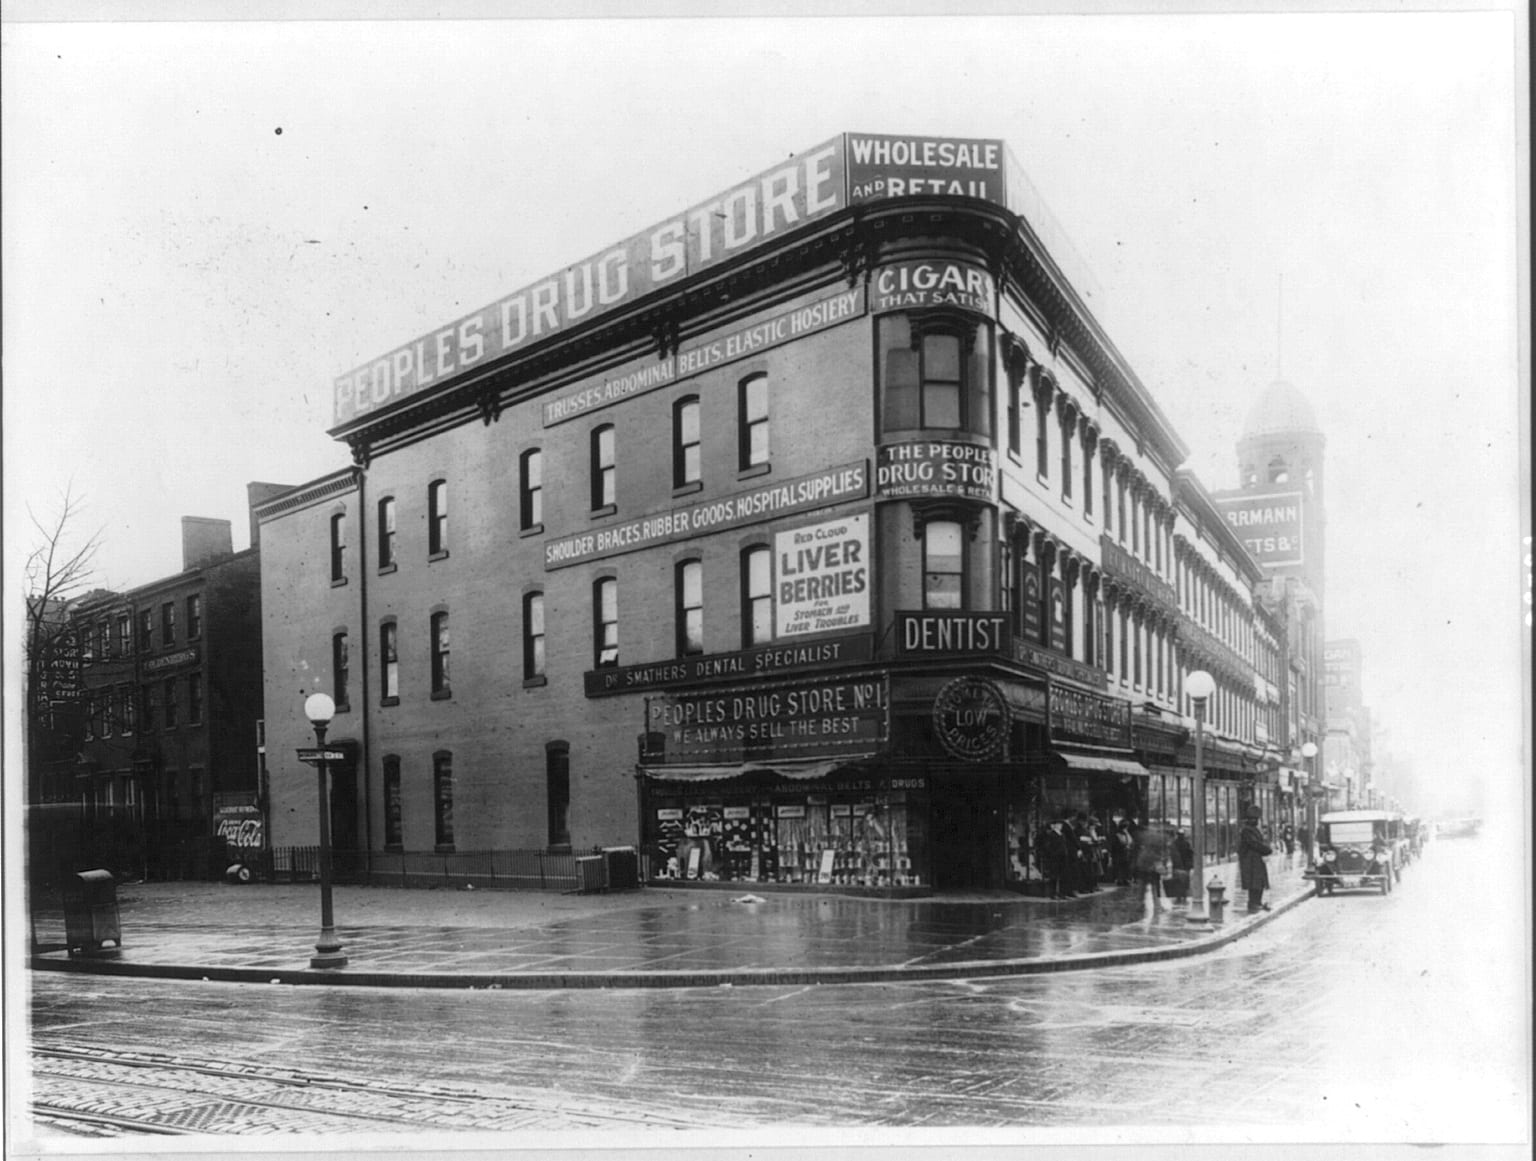 People's Drug Store No. 1, 7th and Massachusetts Ave, N.W., Washington, D.C.